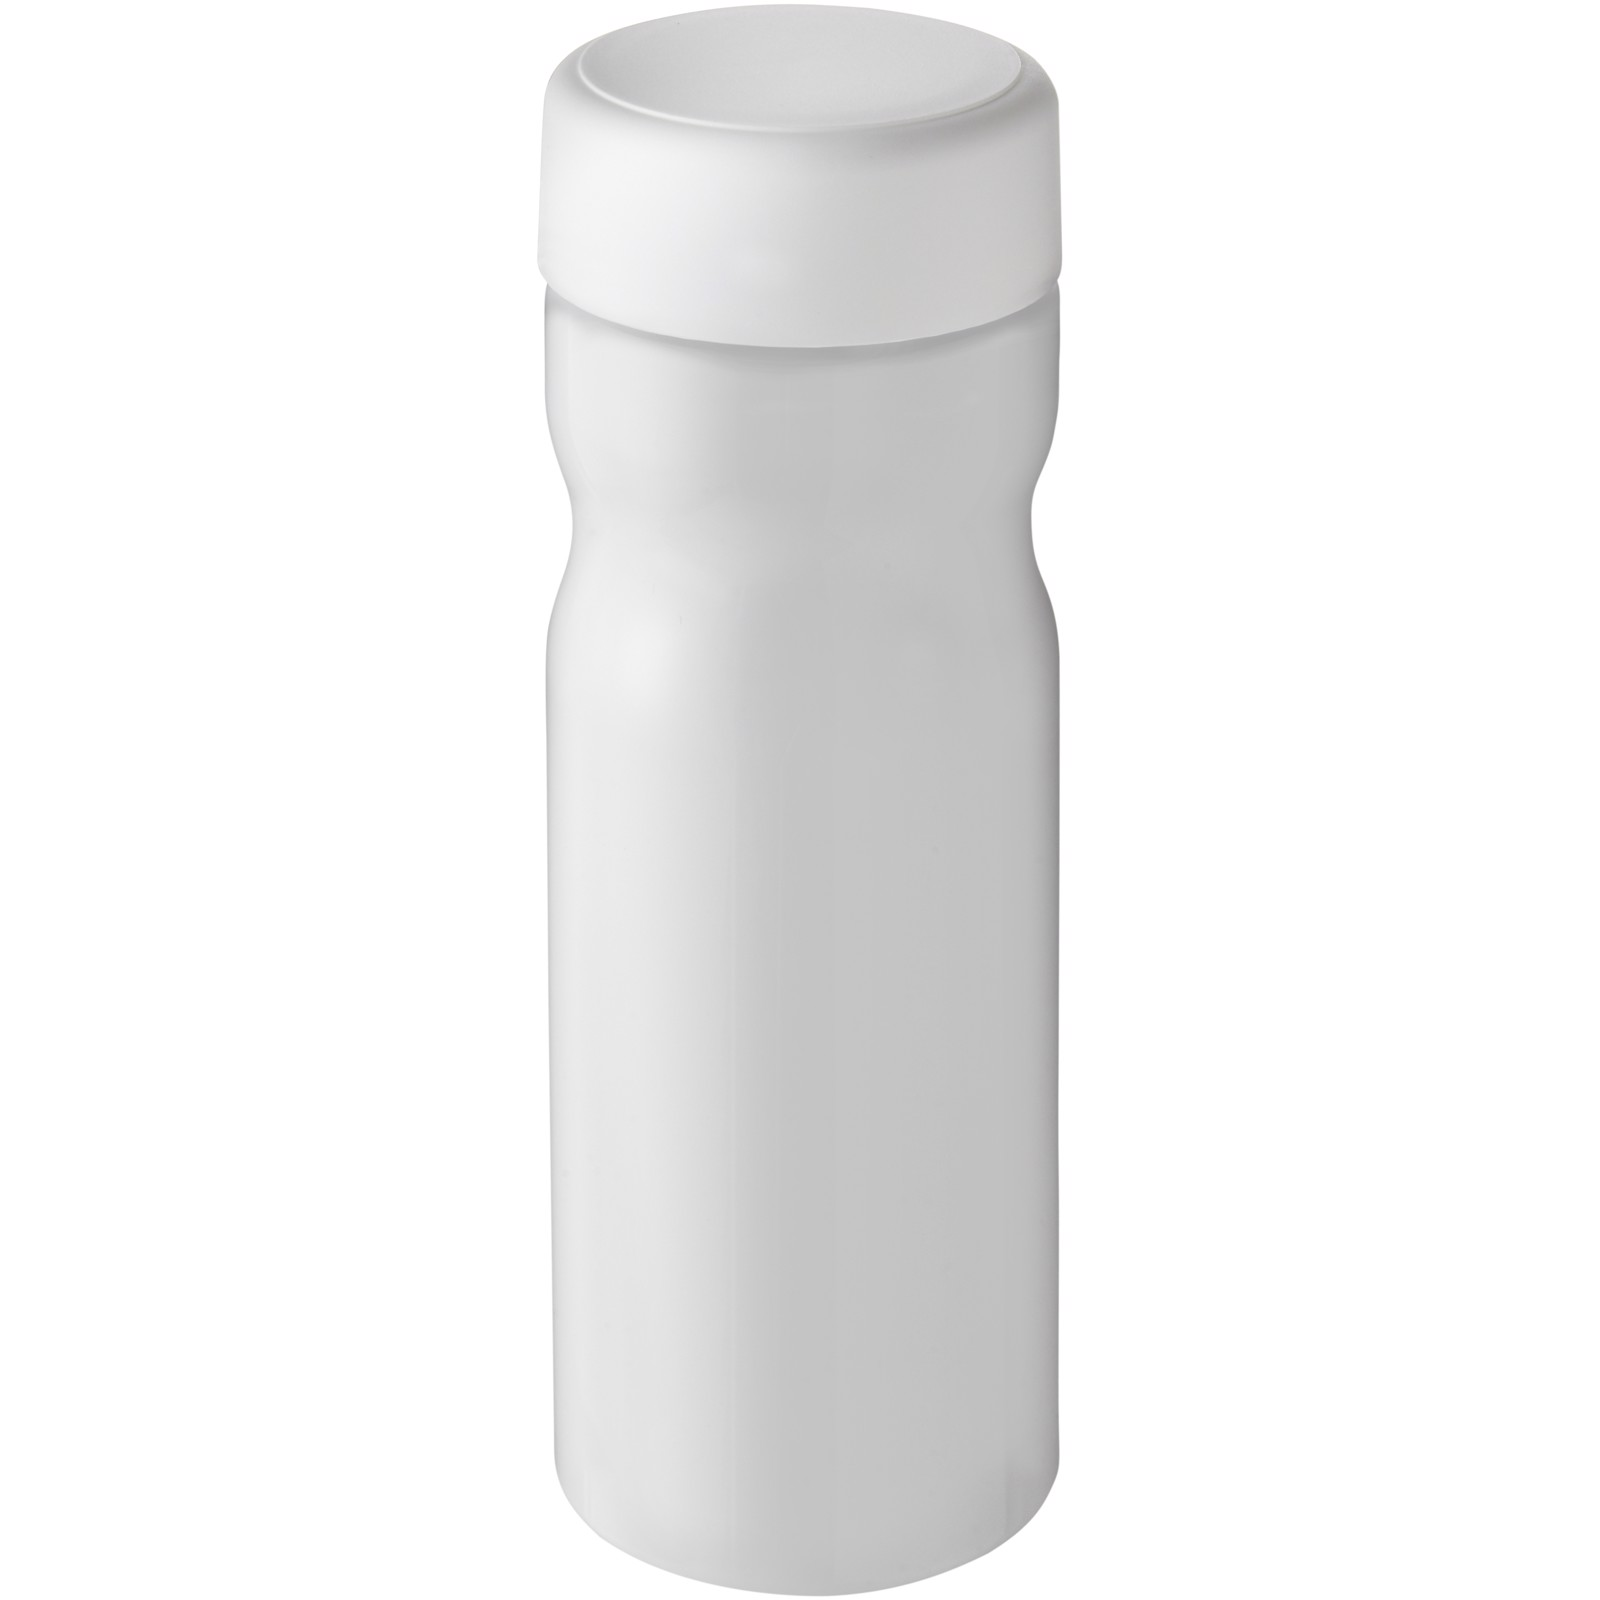 H2O Base 650 ml screw cap water bottle - White